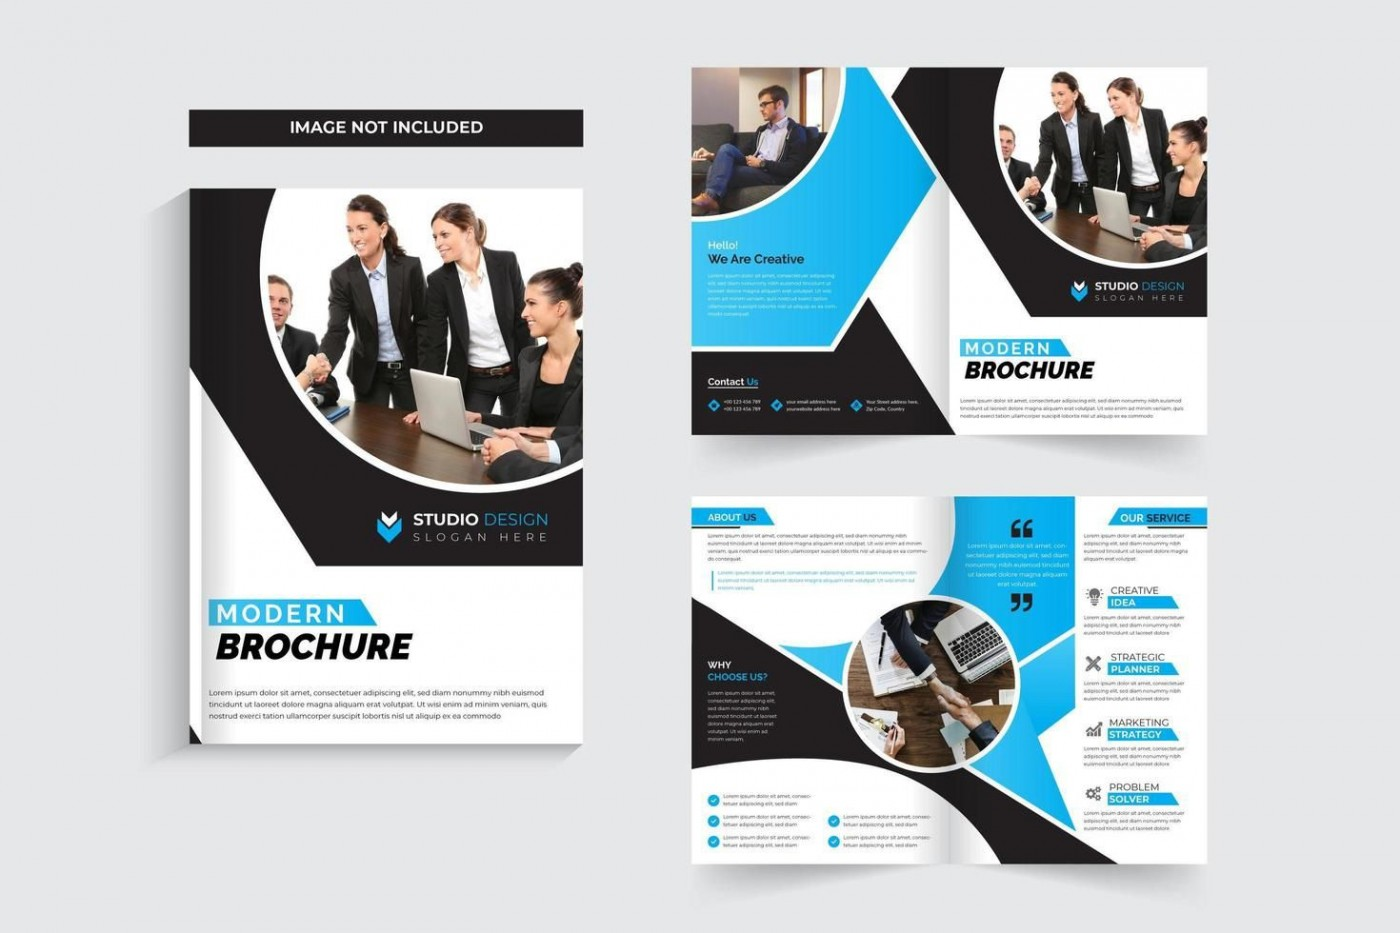 006 Wonderful Brochure Template Free Download Image  For Word 2010 Microsoft Ppt1400